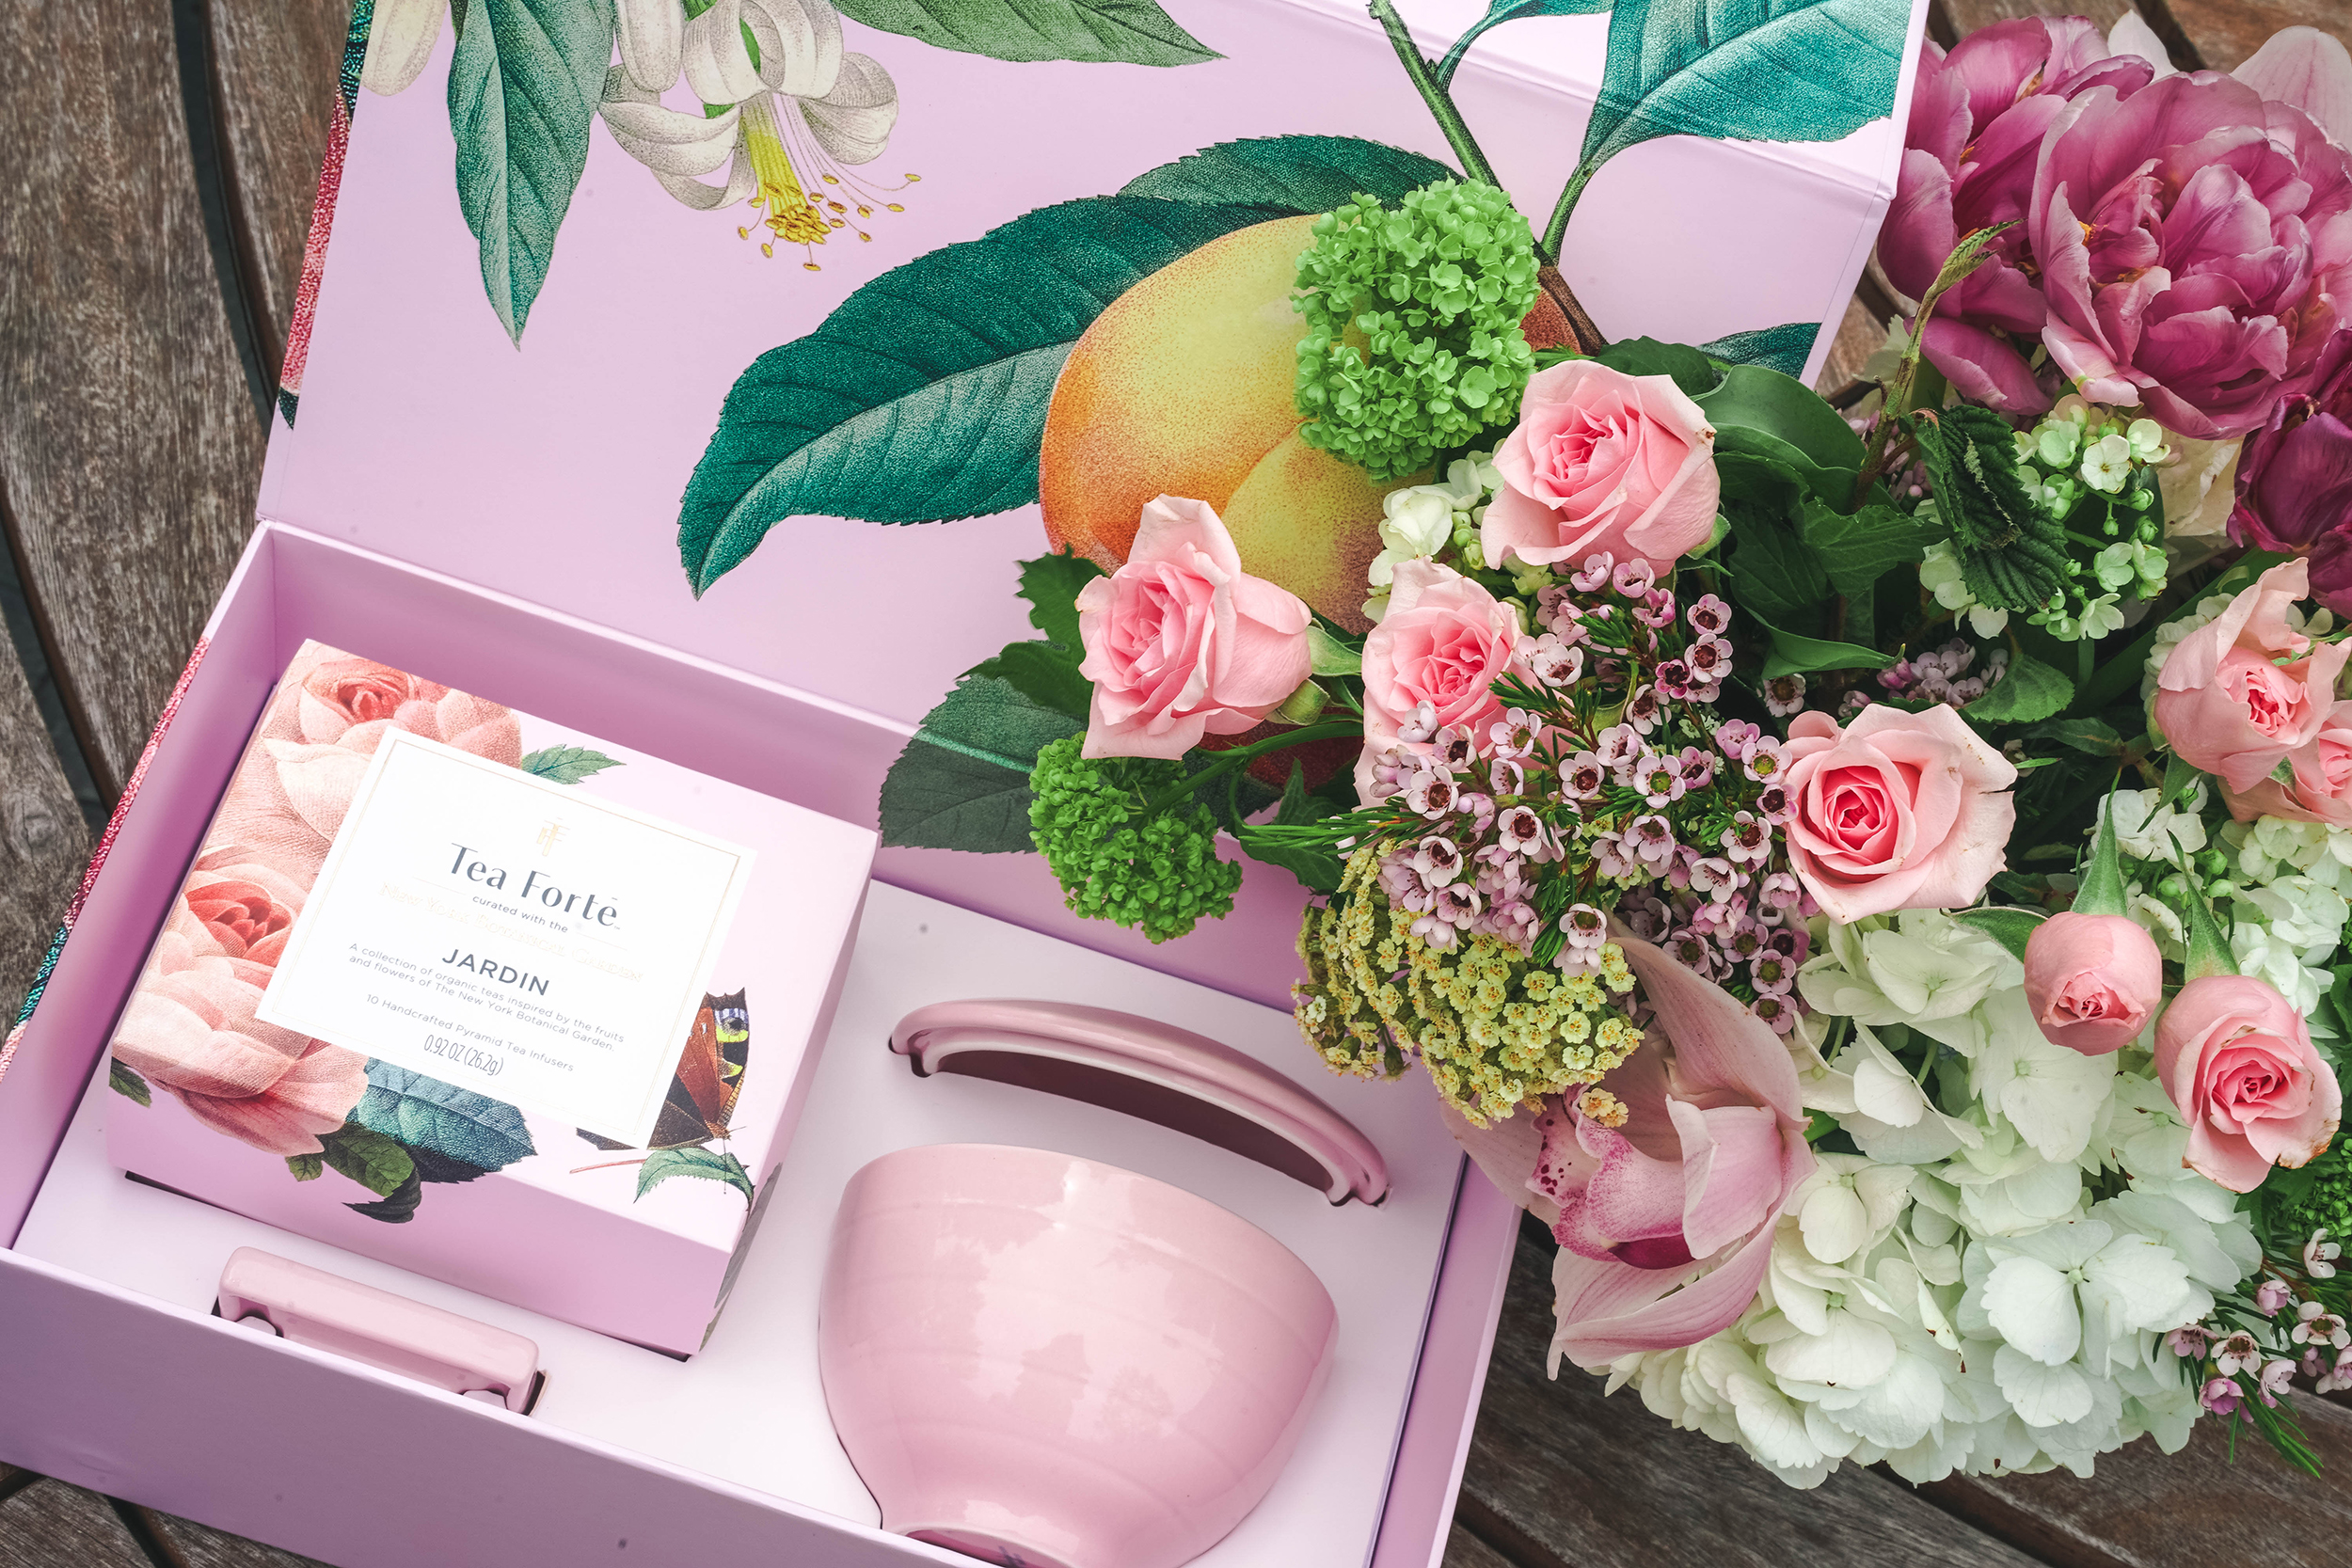 Tea Forte Jardin Pink Gift Set in beautiful matching giftbox